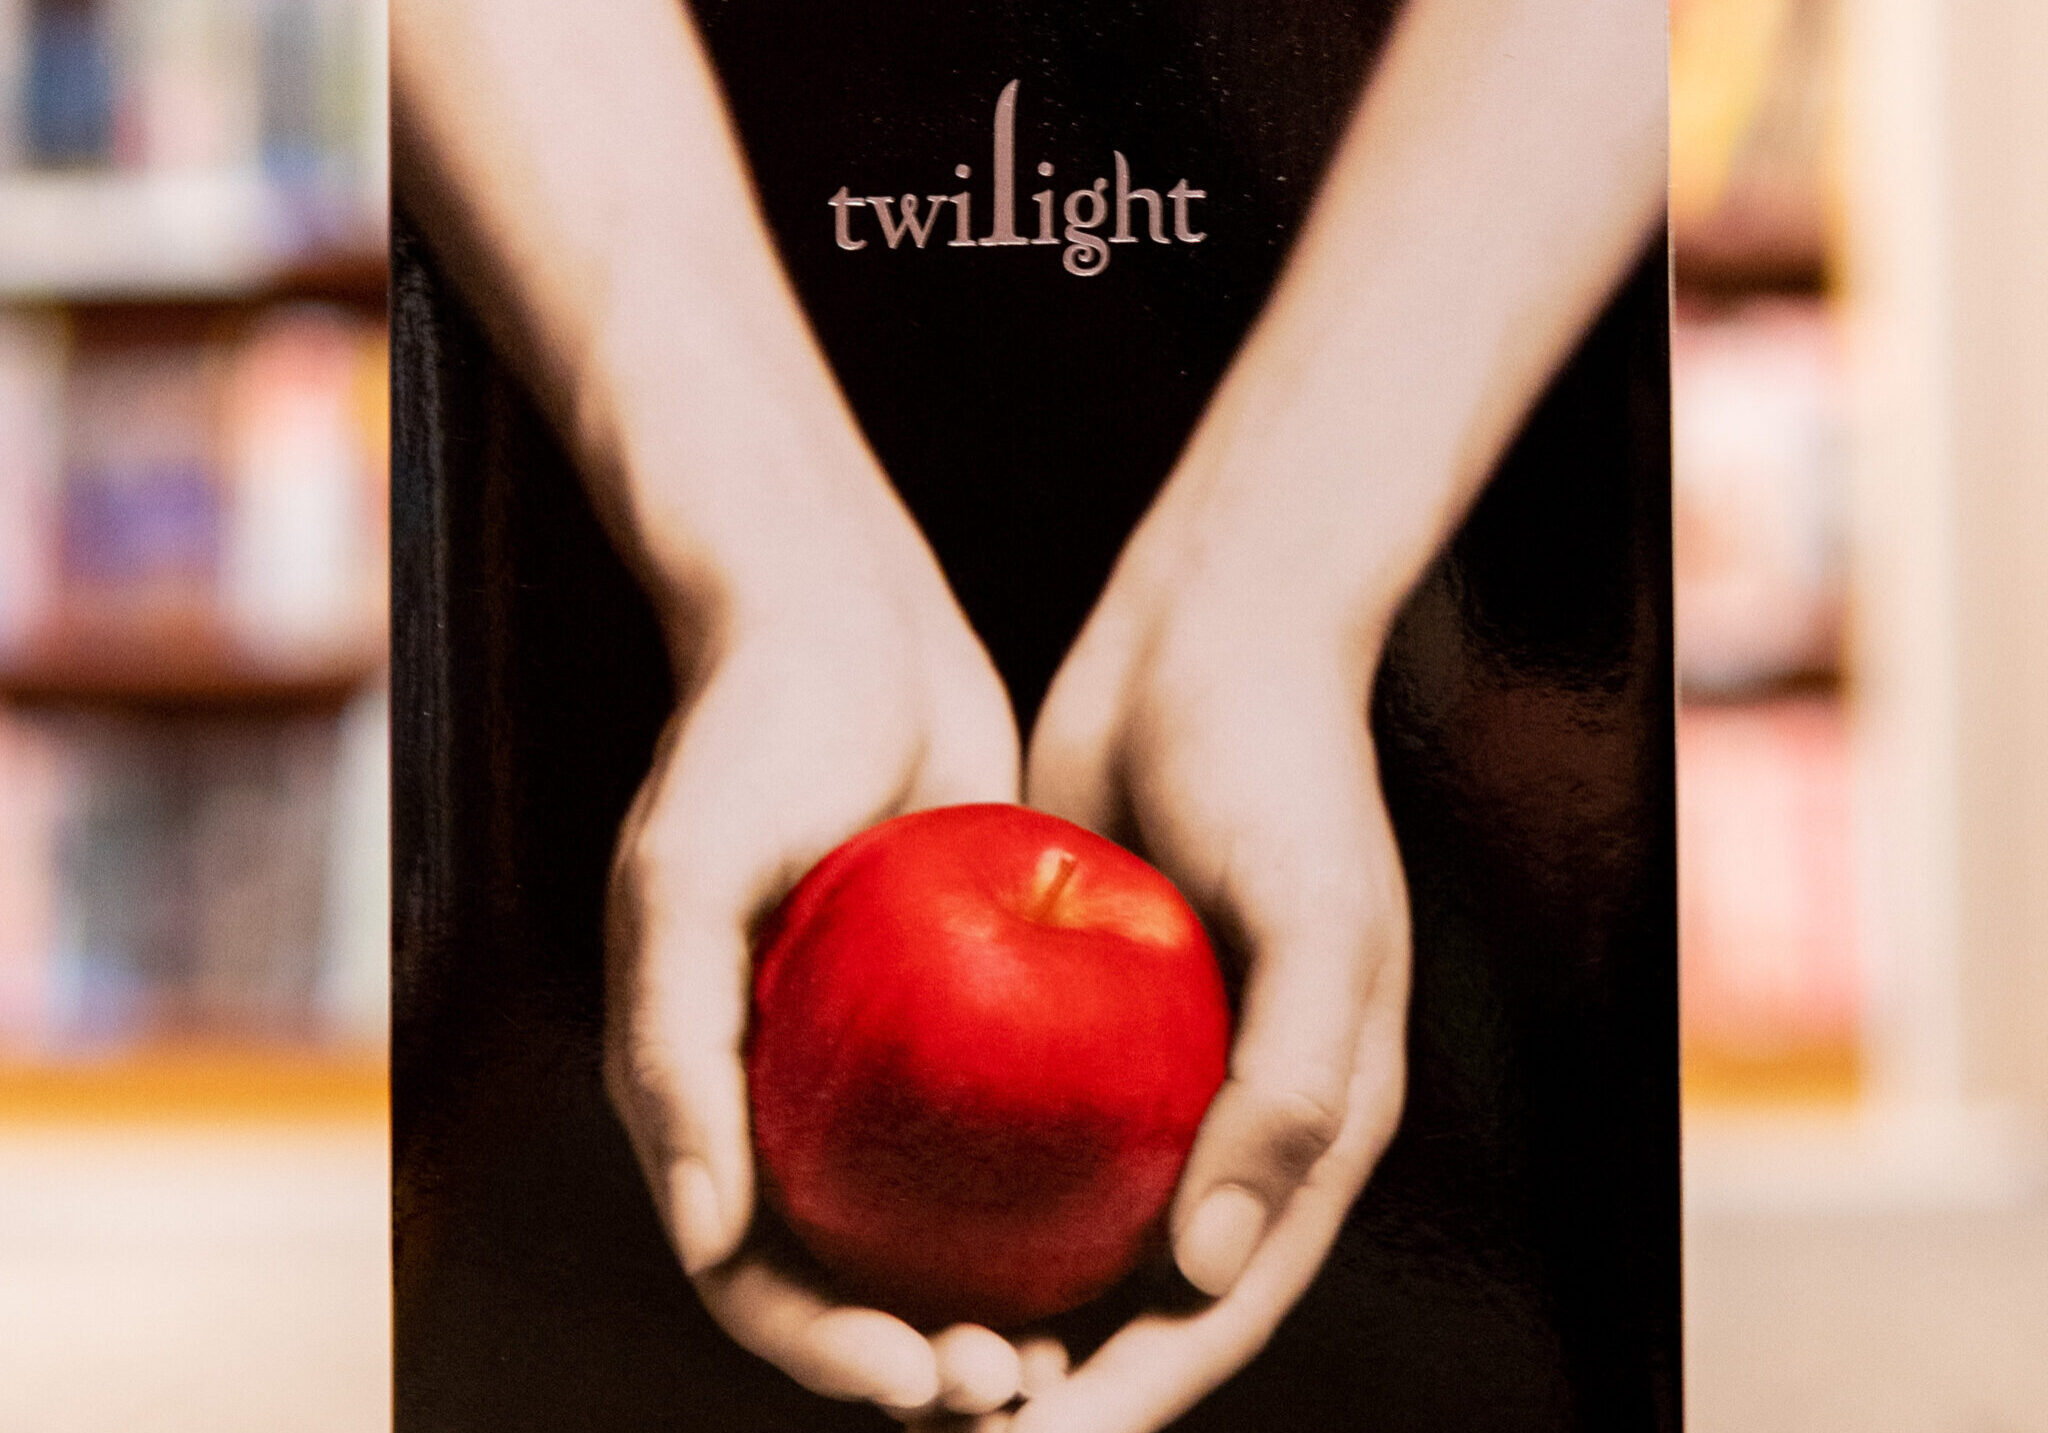 Despite many critical reviews, books in the Twilight series have sold more than 120 million  copies worldwide. (Photo by Geoffrey Howard)